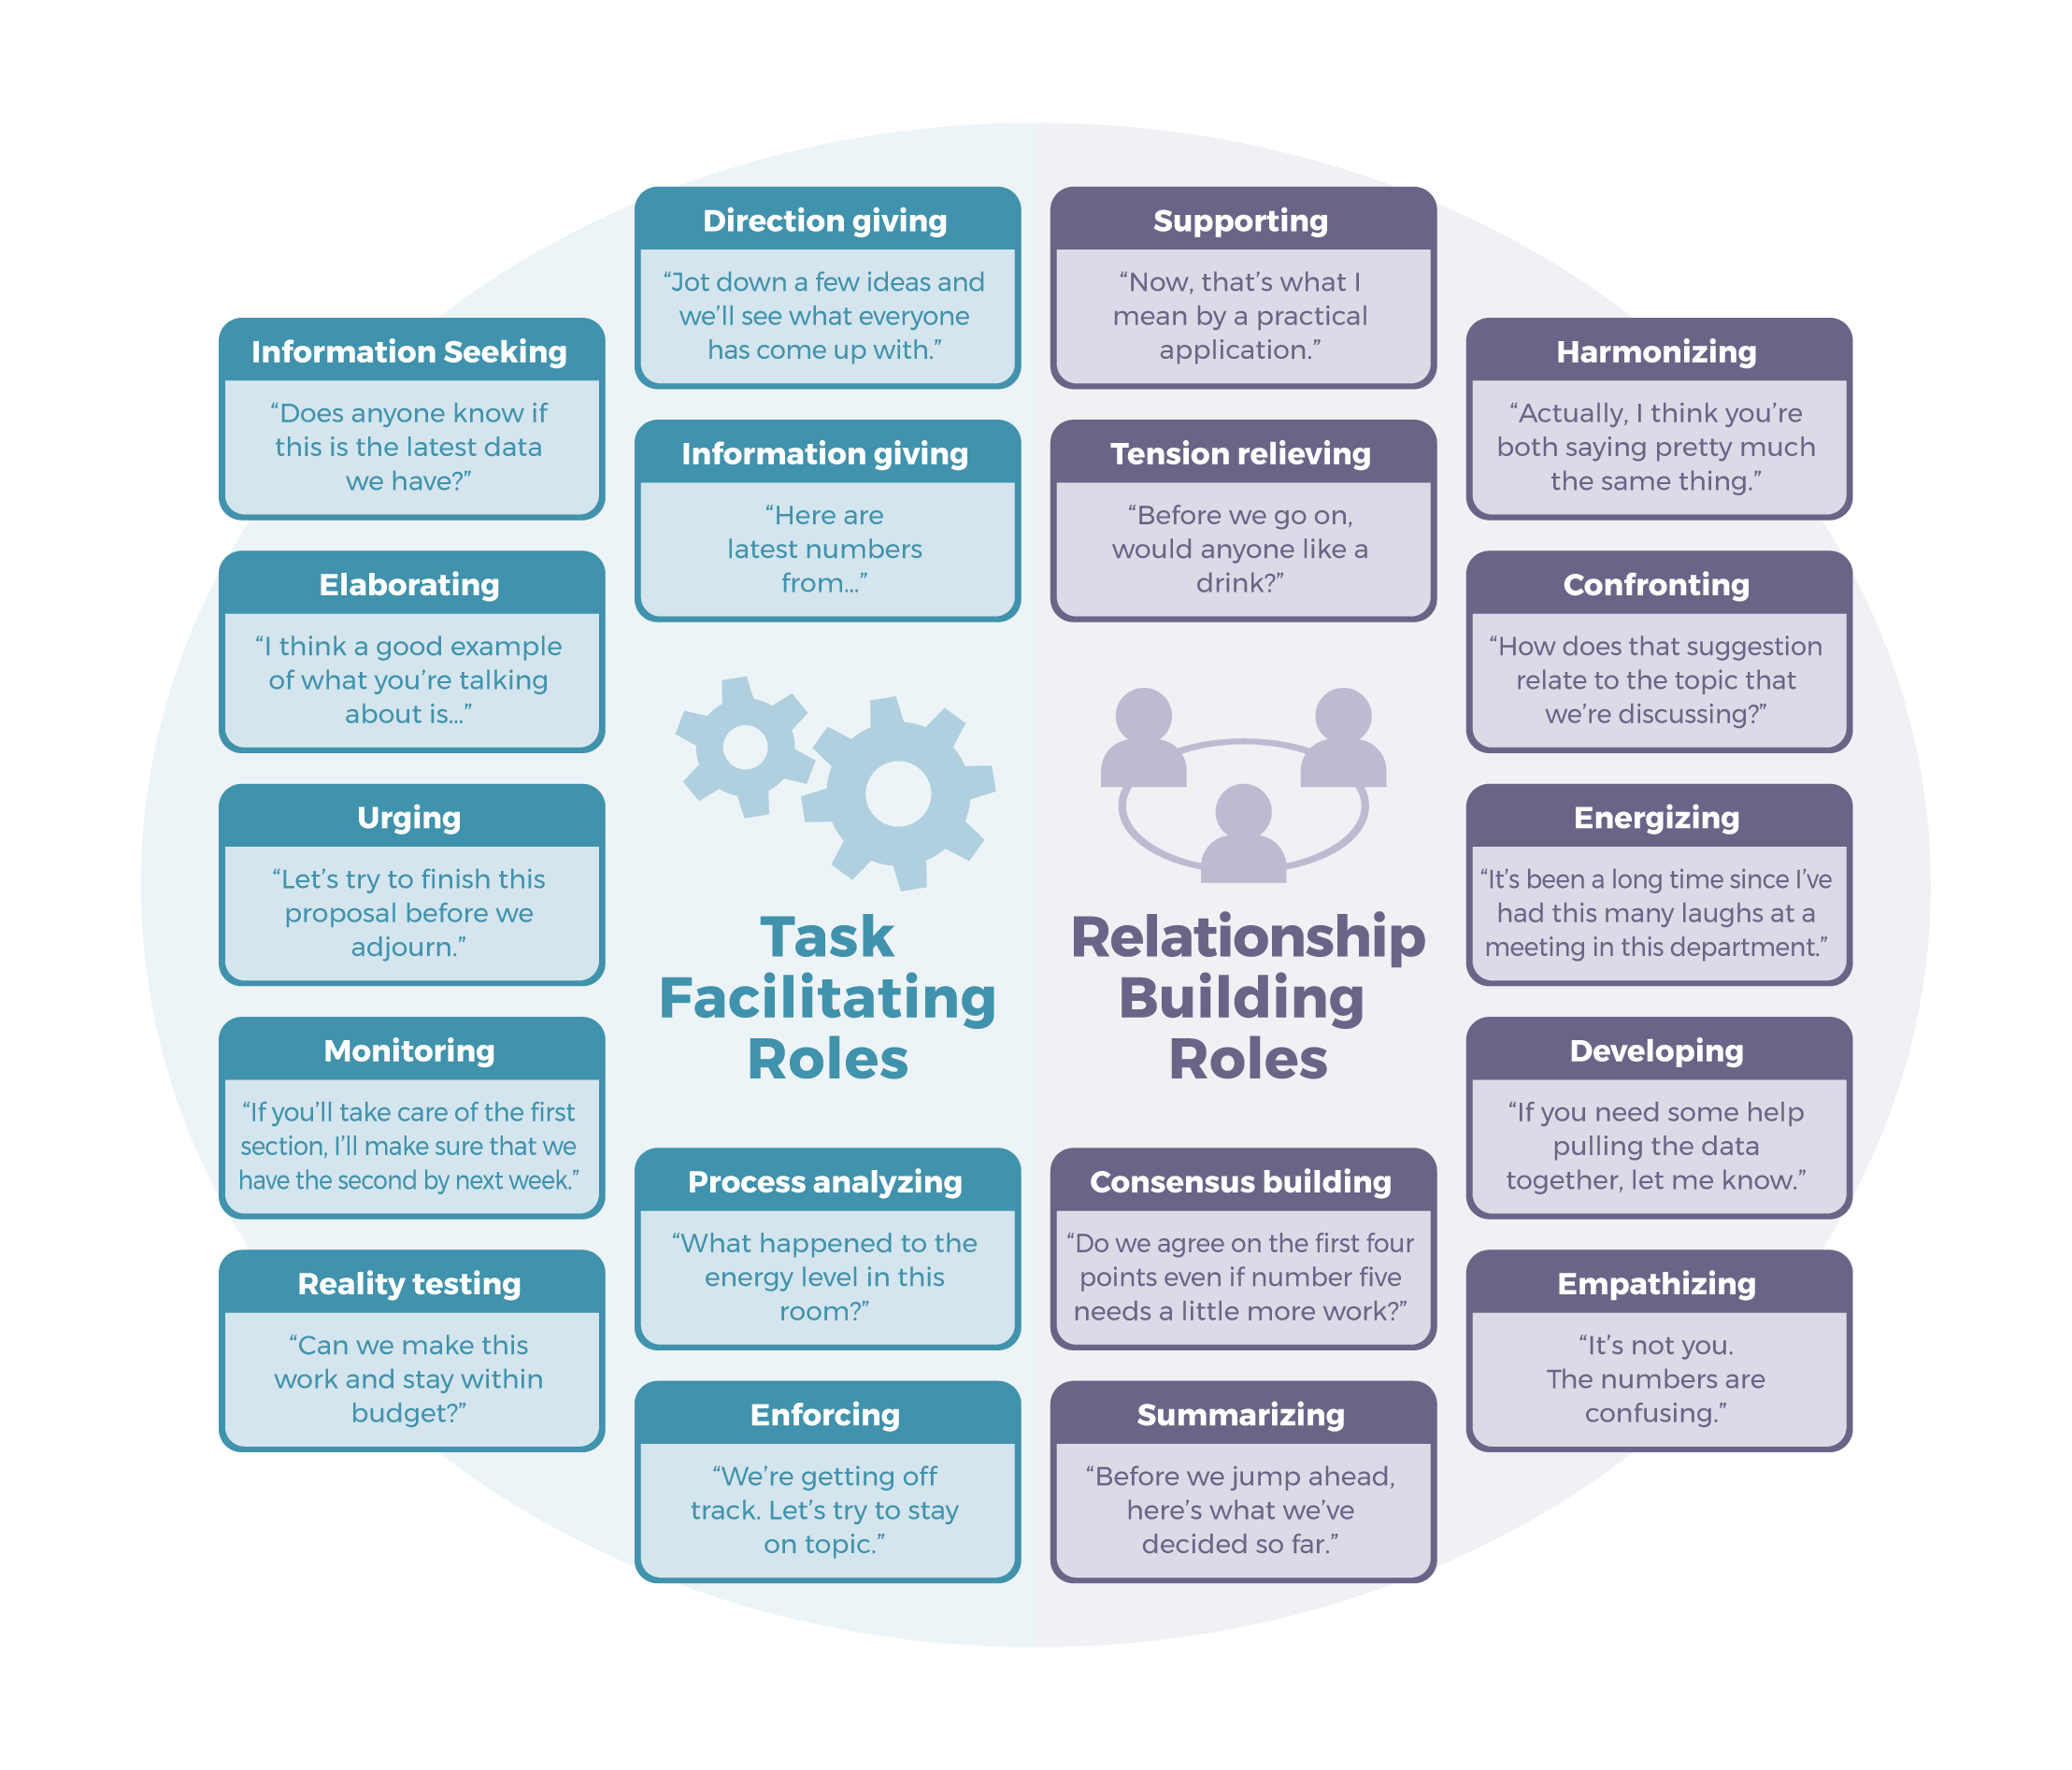 Chart providing examples of task-facilitating role, relationship-building roles, and their examples